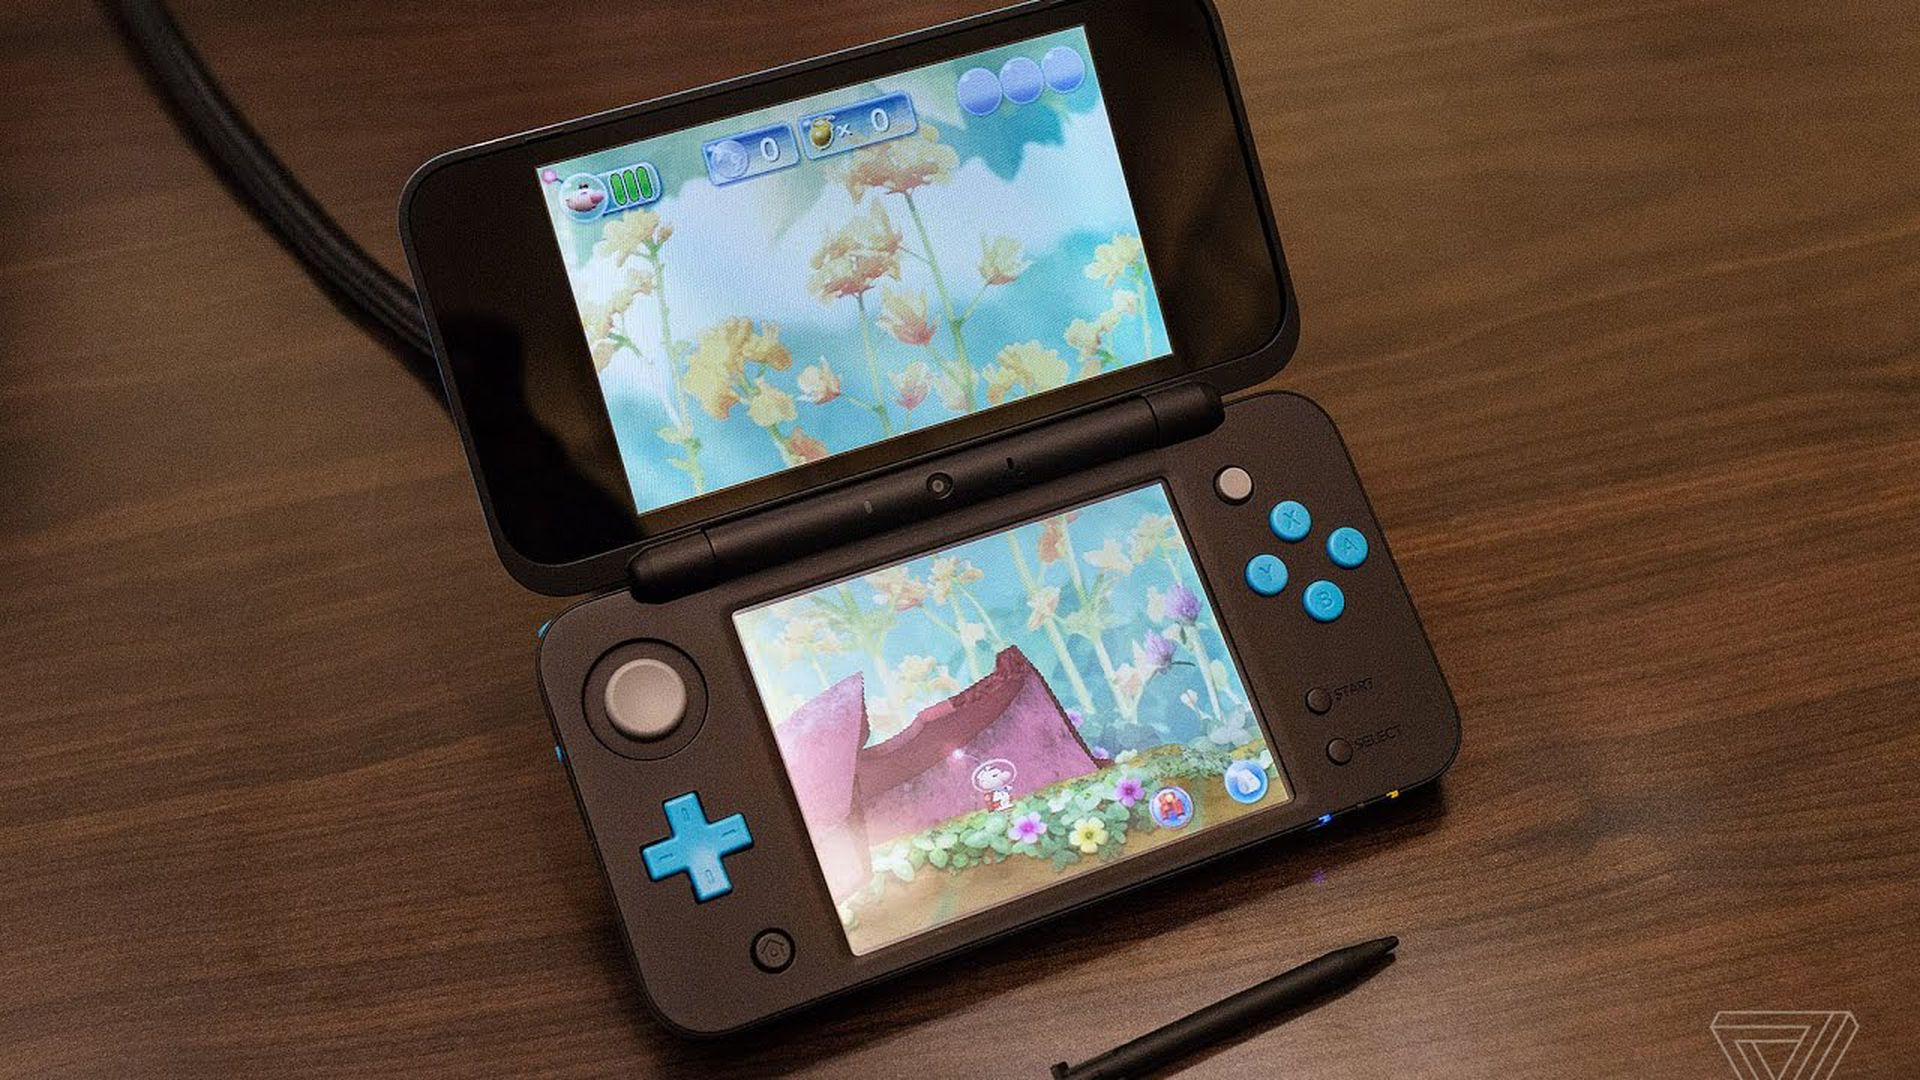 3Ds Future Releases new nintendo 2ds xl hands-on: this is the 3ds that always